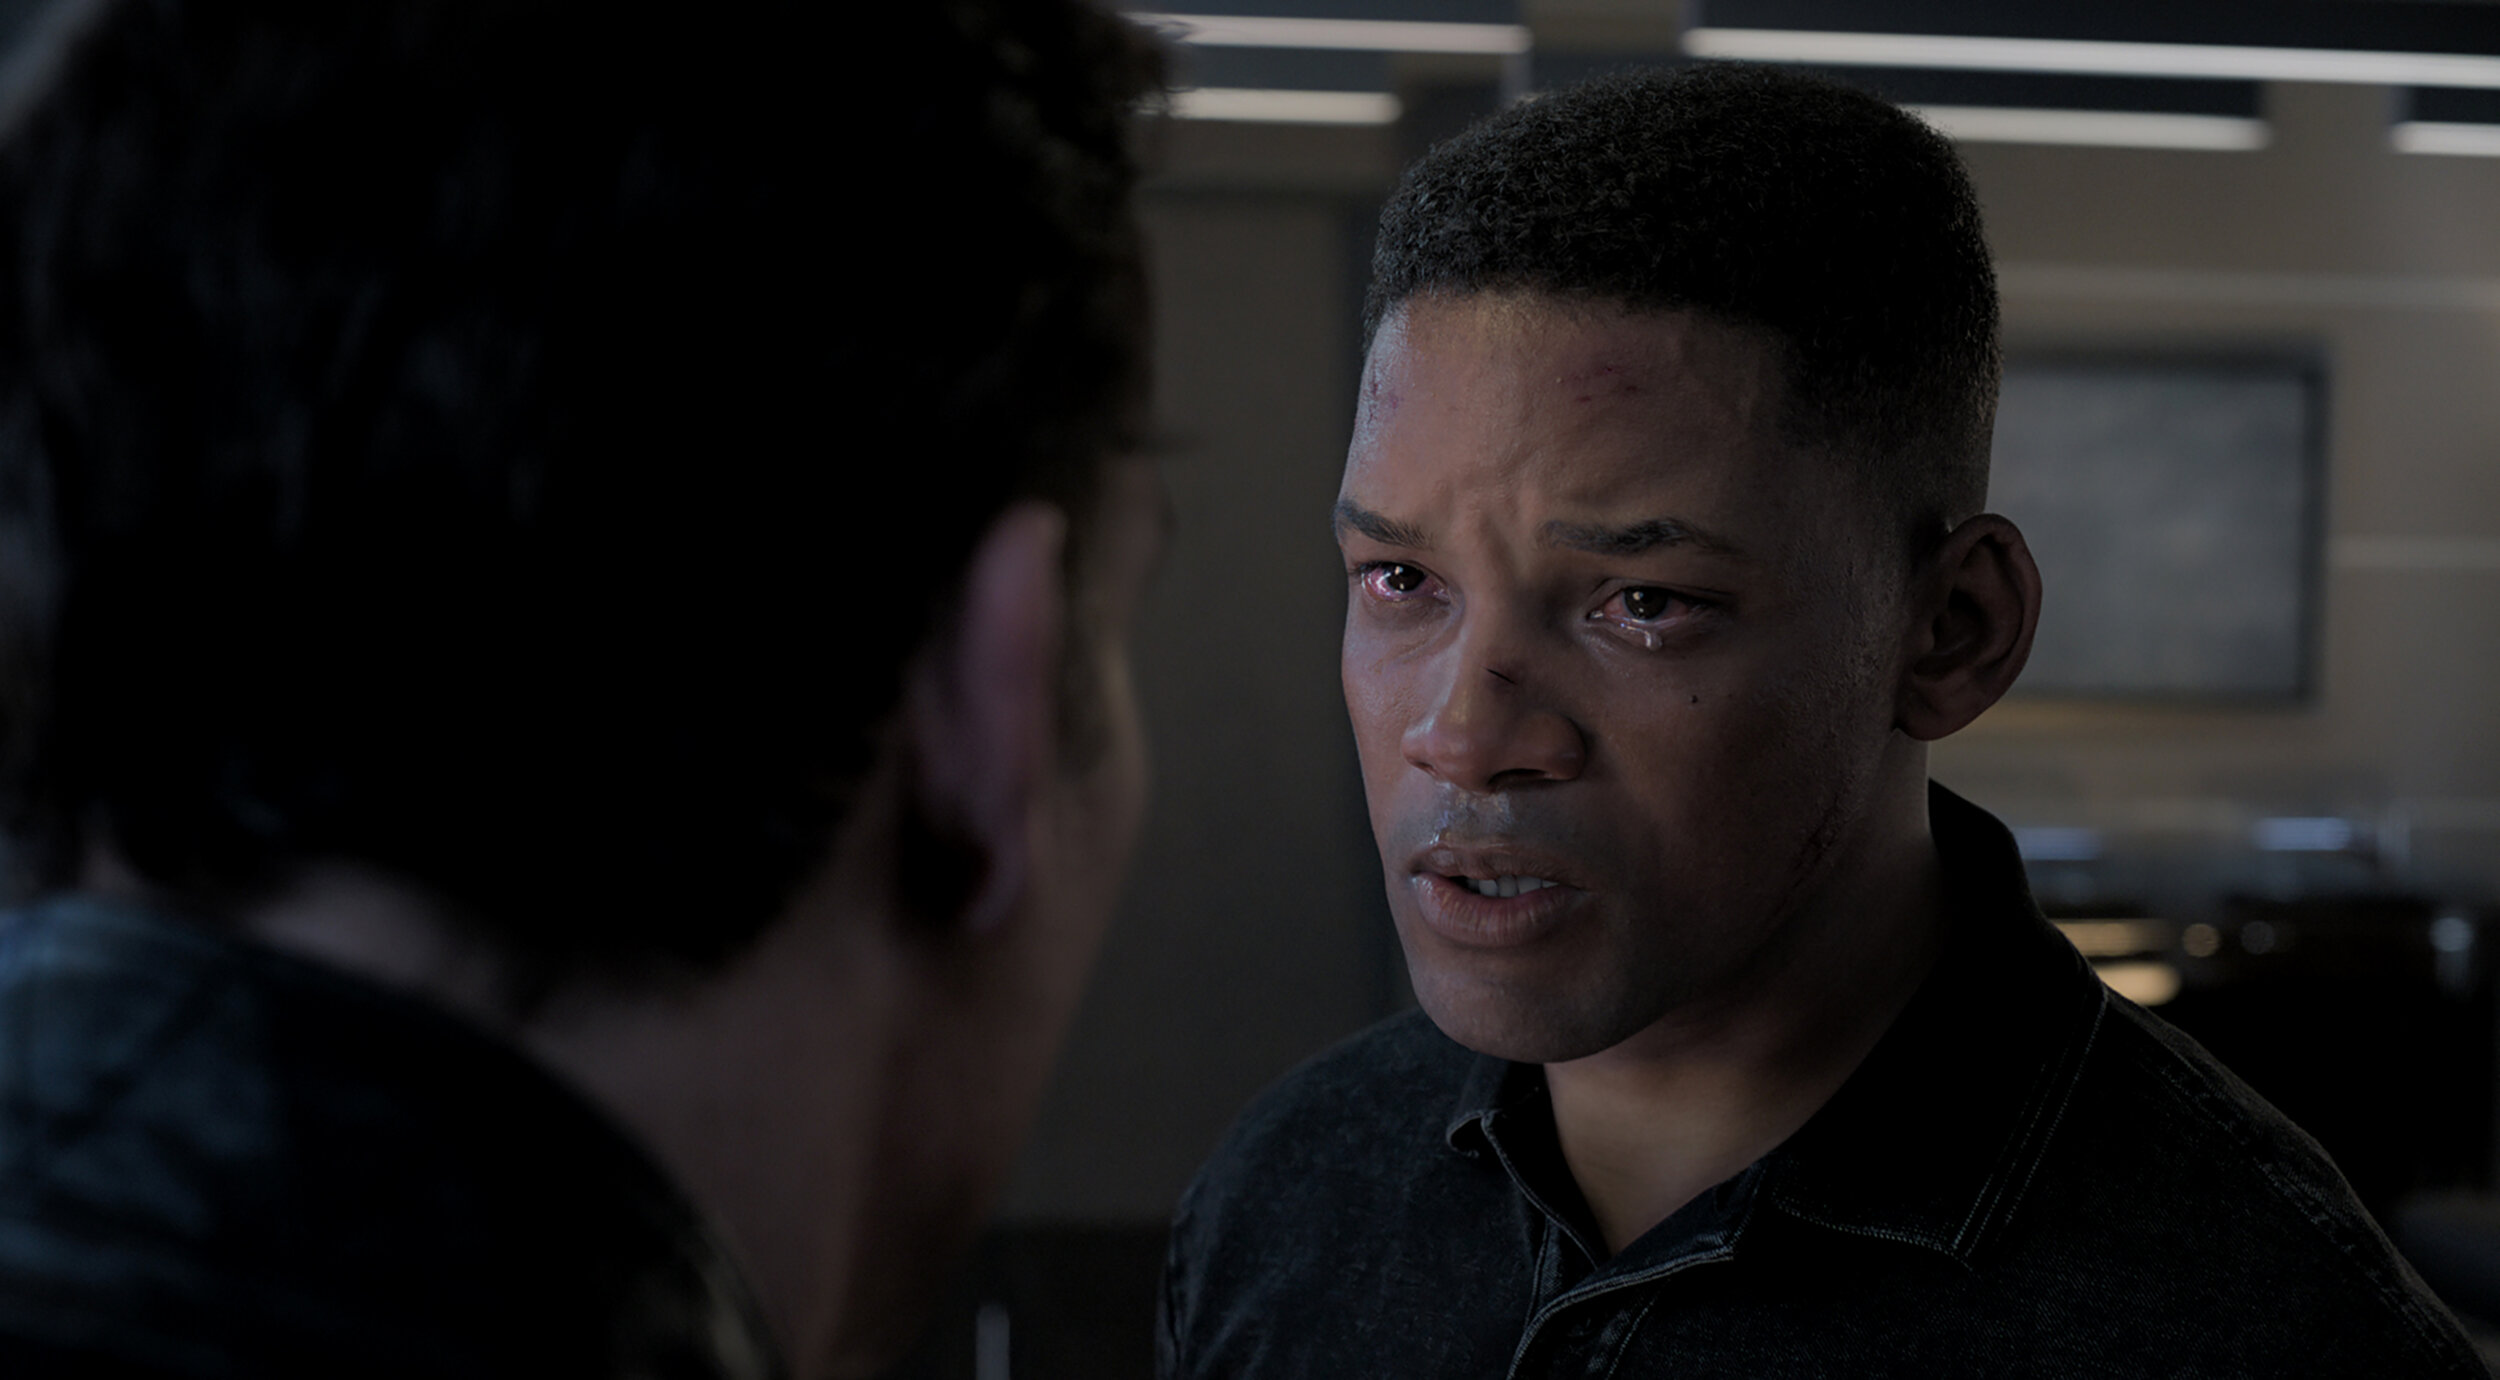 "Young assassin Junior (played by a de-aged Will Smith) confronts his handler, Clay Verris (Clive Owen), in a scene from Ang Lee's action thriller ""Gemini Man."" (Image courtesy of Paramount Pictures.)"